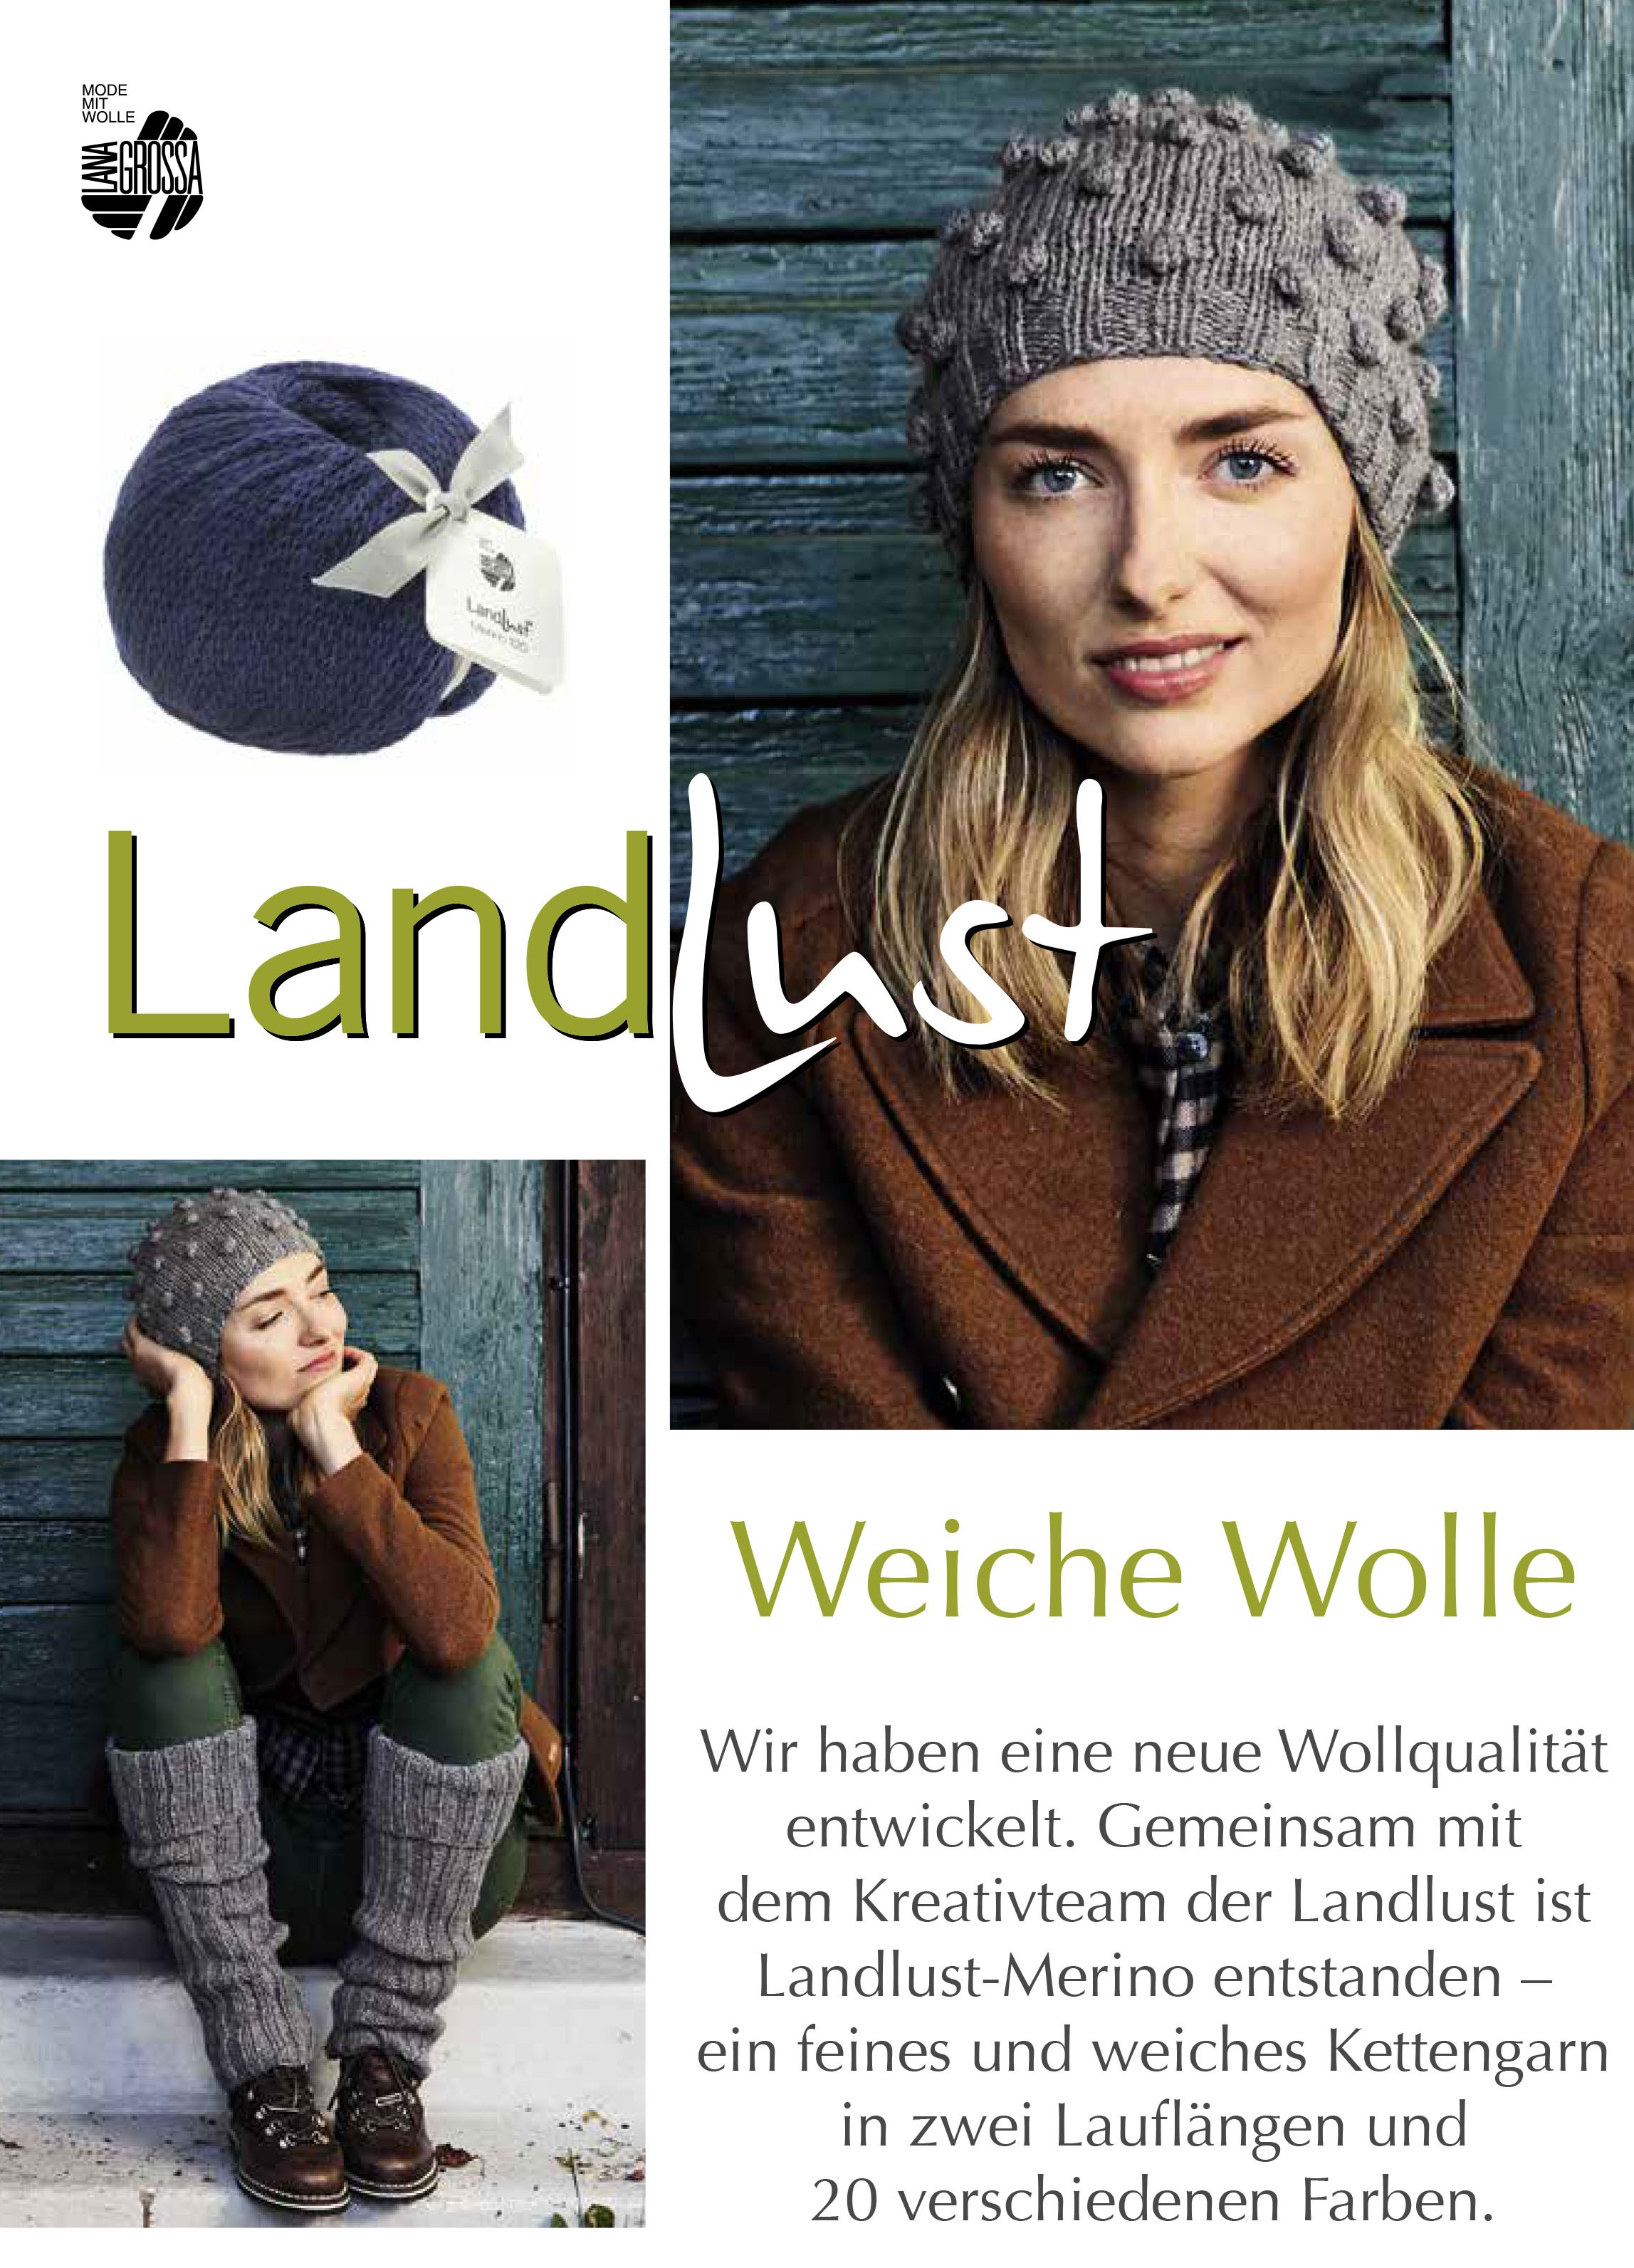 Lana Grossa LANDLUST Flyer 2 - German Edition